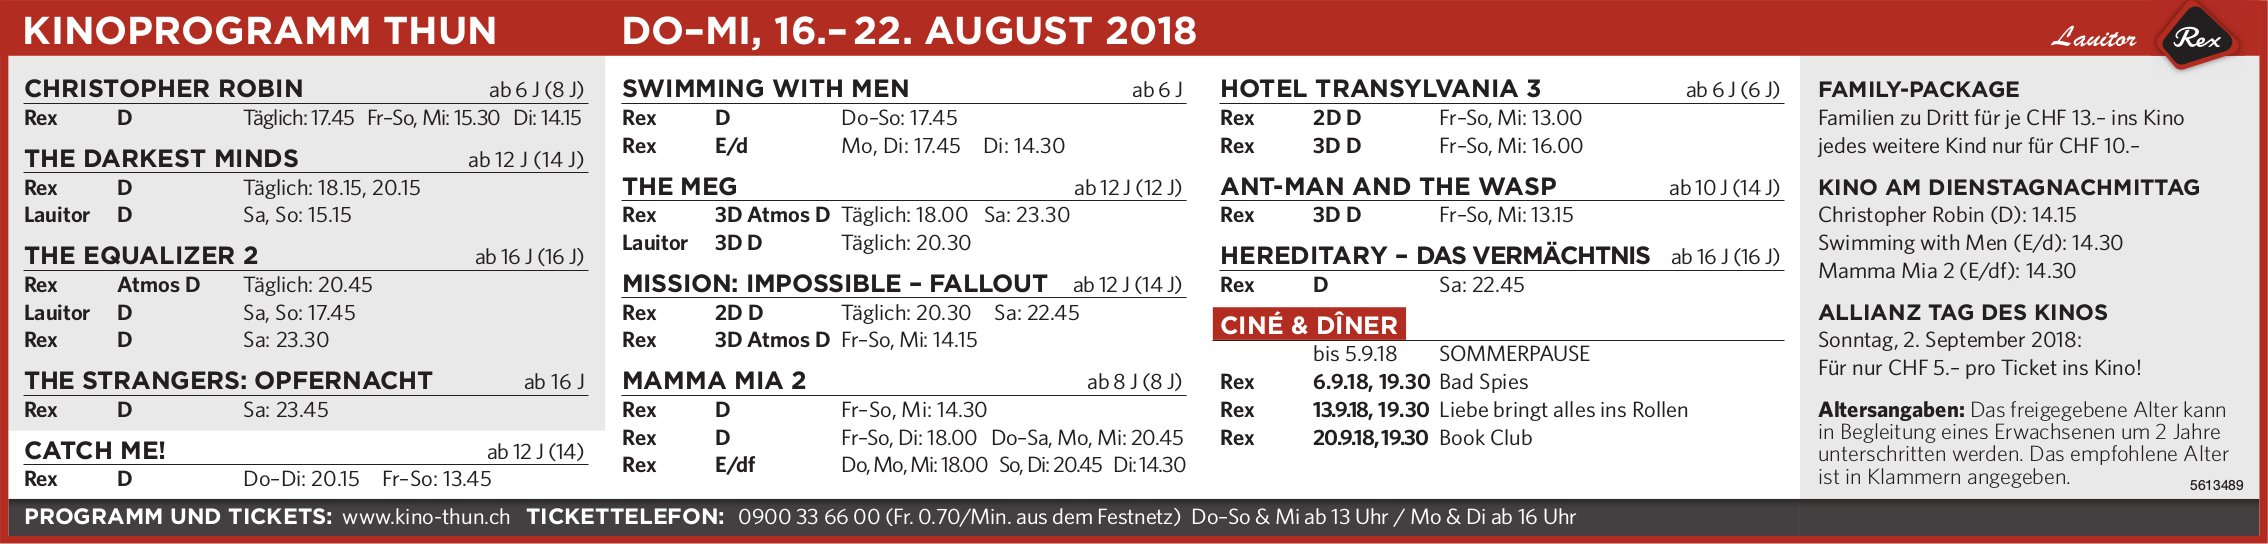 KINOPROGRAMM THUN, DO–MI, 16.– 22. AUGUST 2018